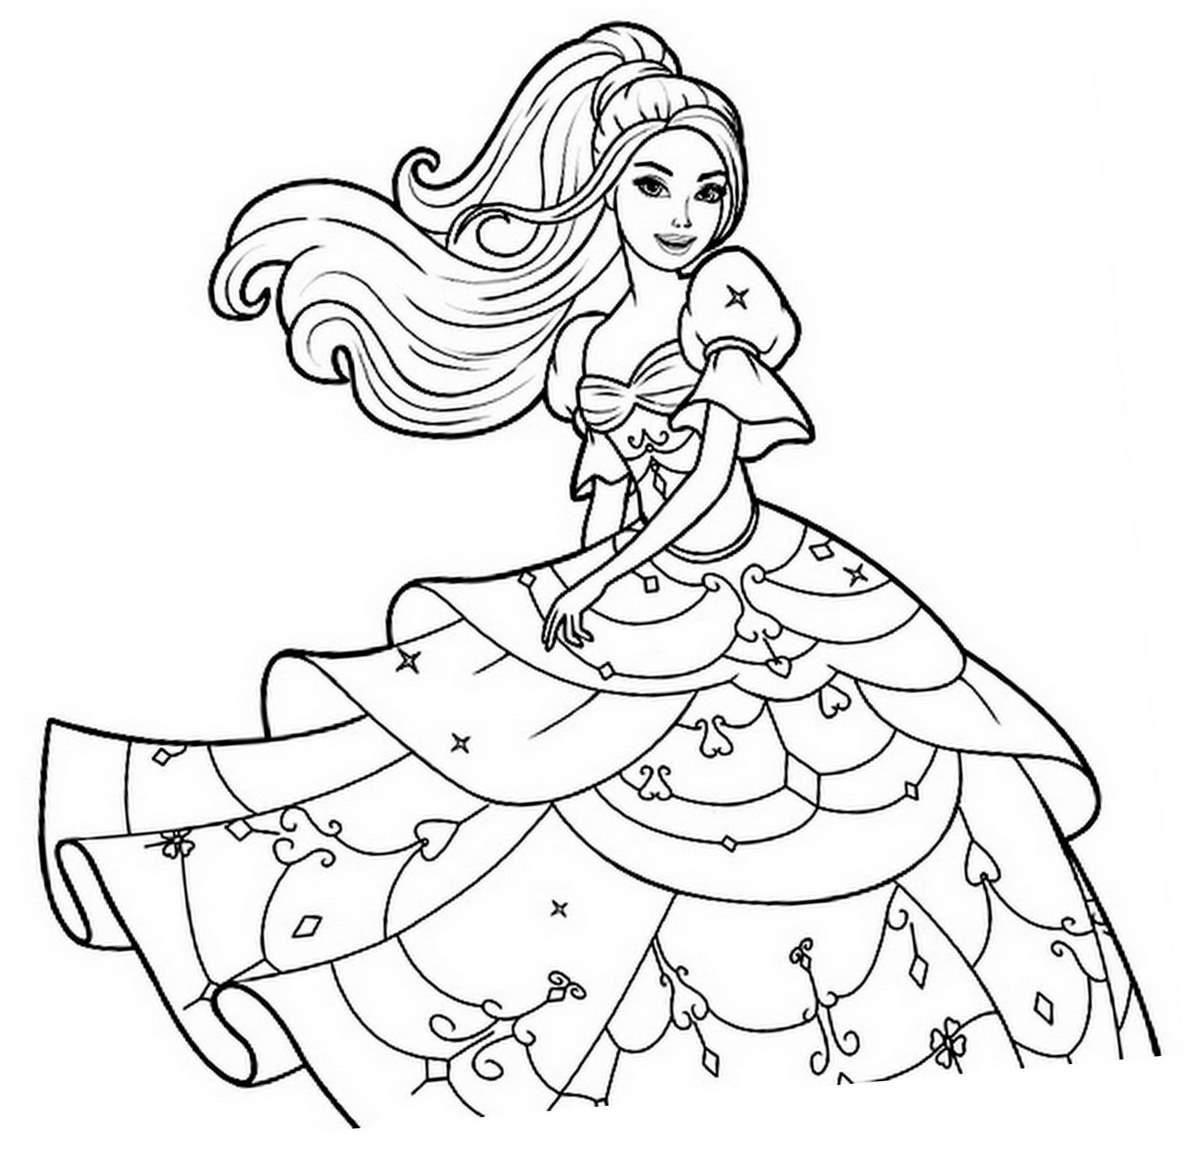 princesses coloring pages princess tiana coloring pages download and print for free coloring pages princesses